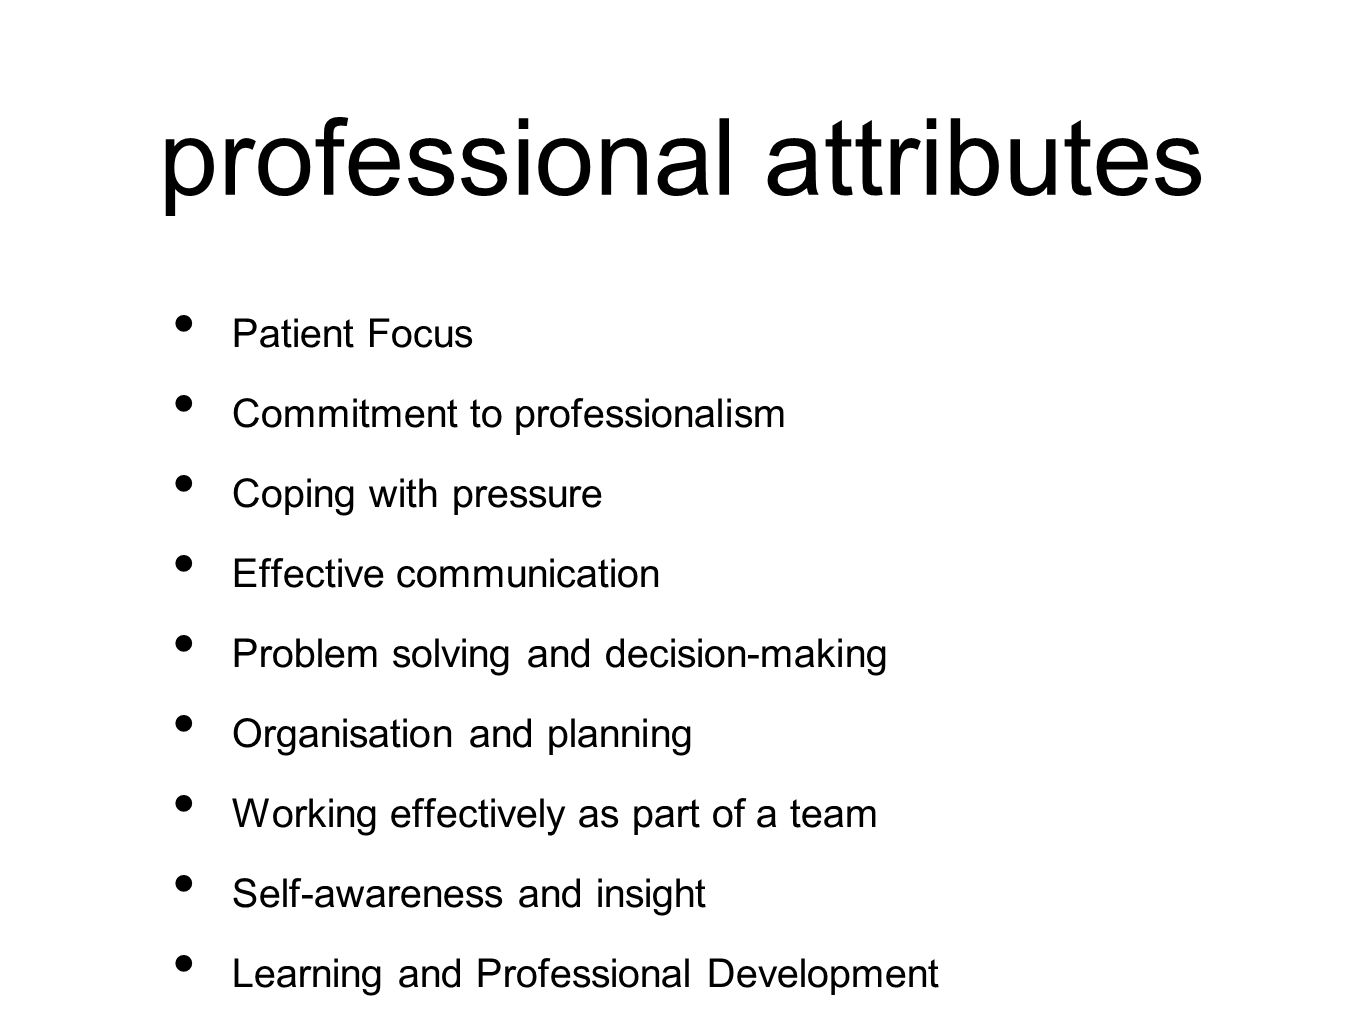 professional attributes Patient Focus Commitment to professionalism Coping with pressure Effective communication Problem solving and decision-making Organisation and planning Working effectively as part of a team Self-awareness and insight Learning and Professional Development